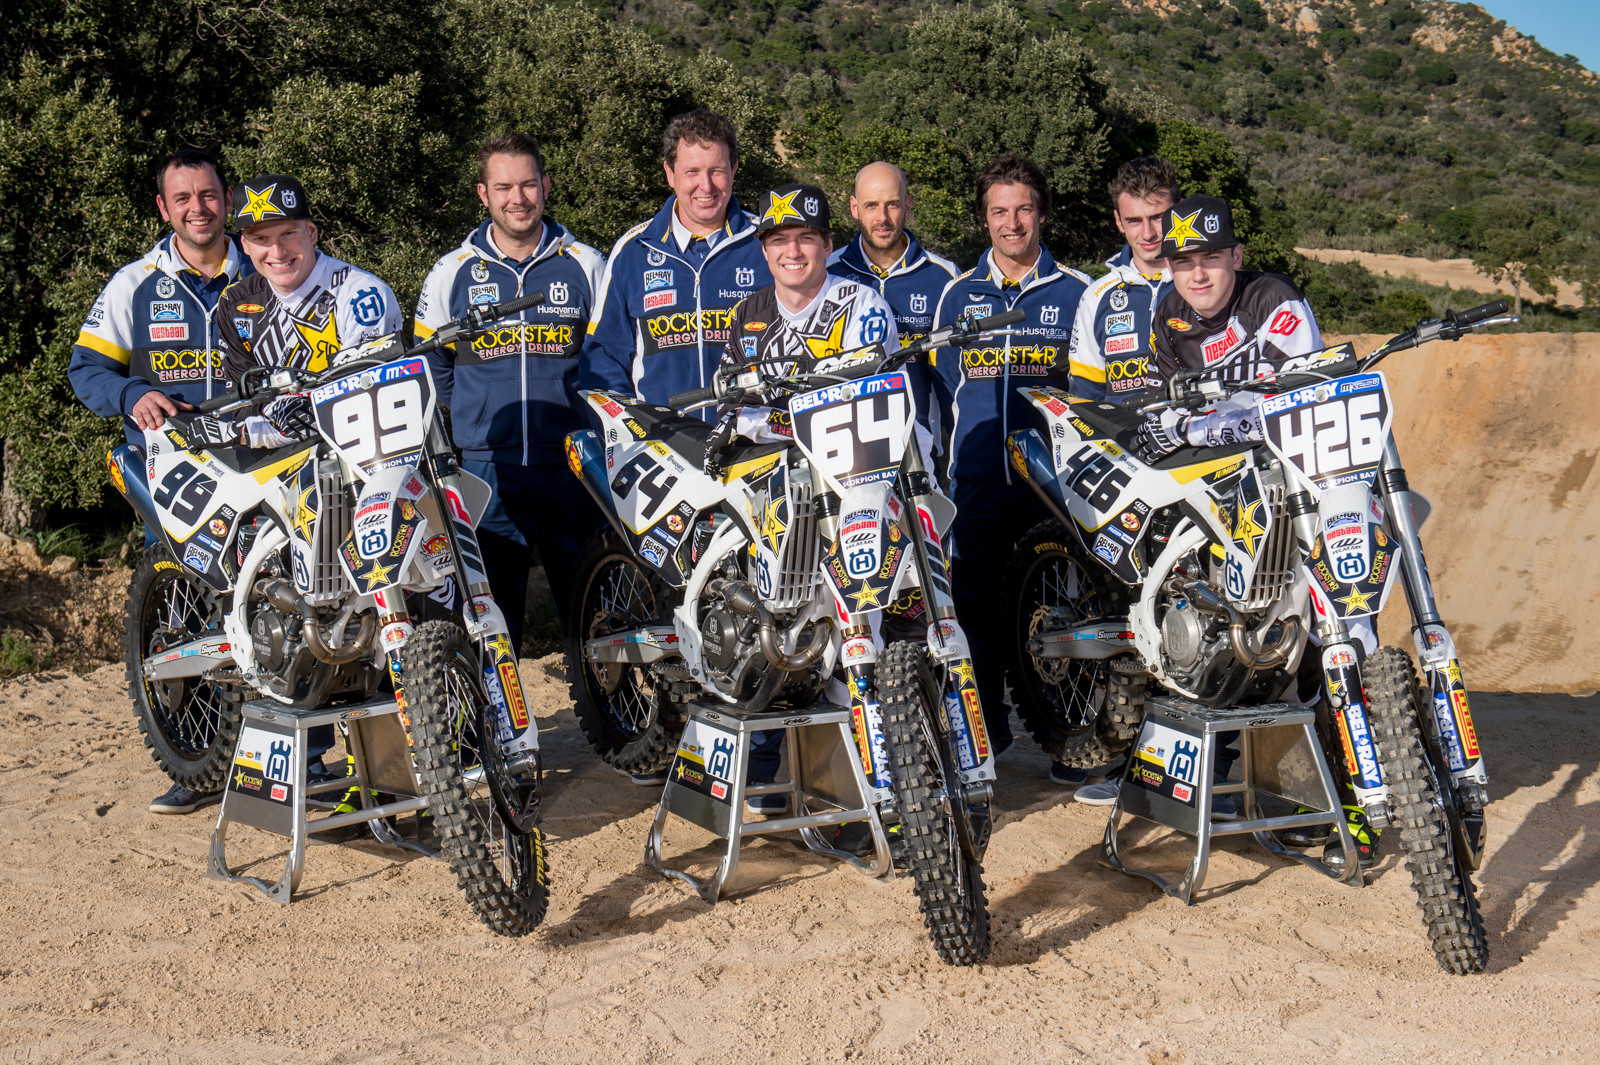 Rockstar Energy Husqvarna Factory Racing MX2 - First Look: Rockstar Energy Husqvarna Factory Racing MX2 - Motocross Pictures - Vital MX